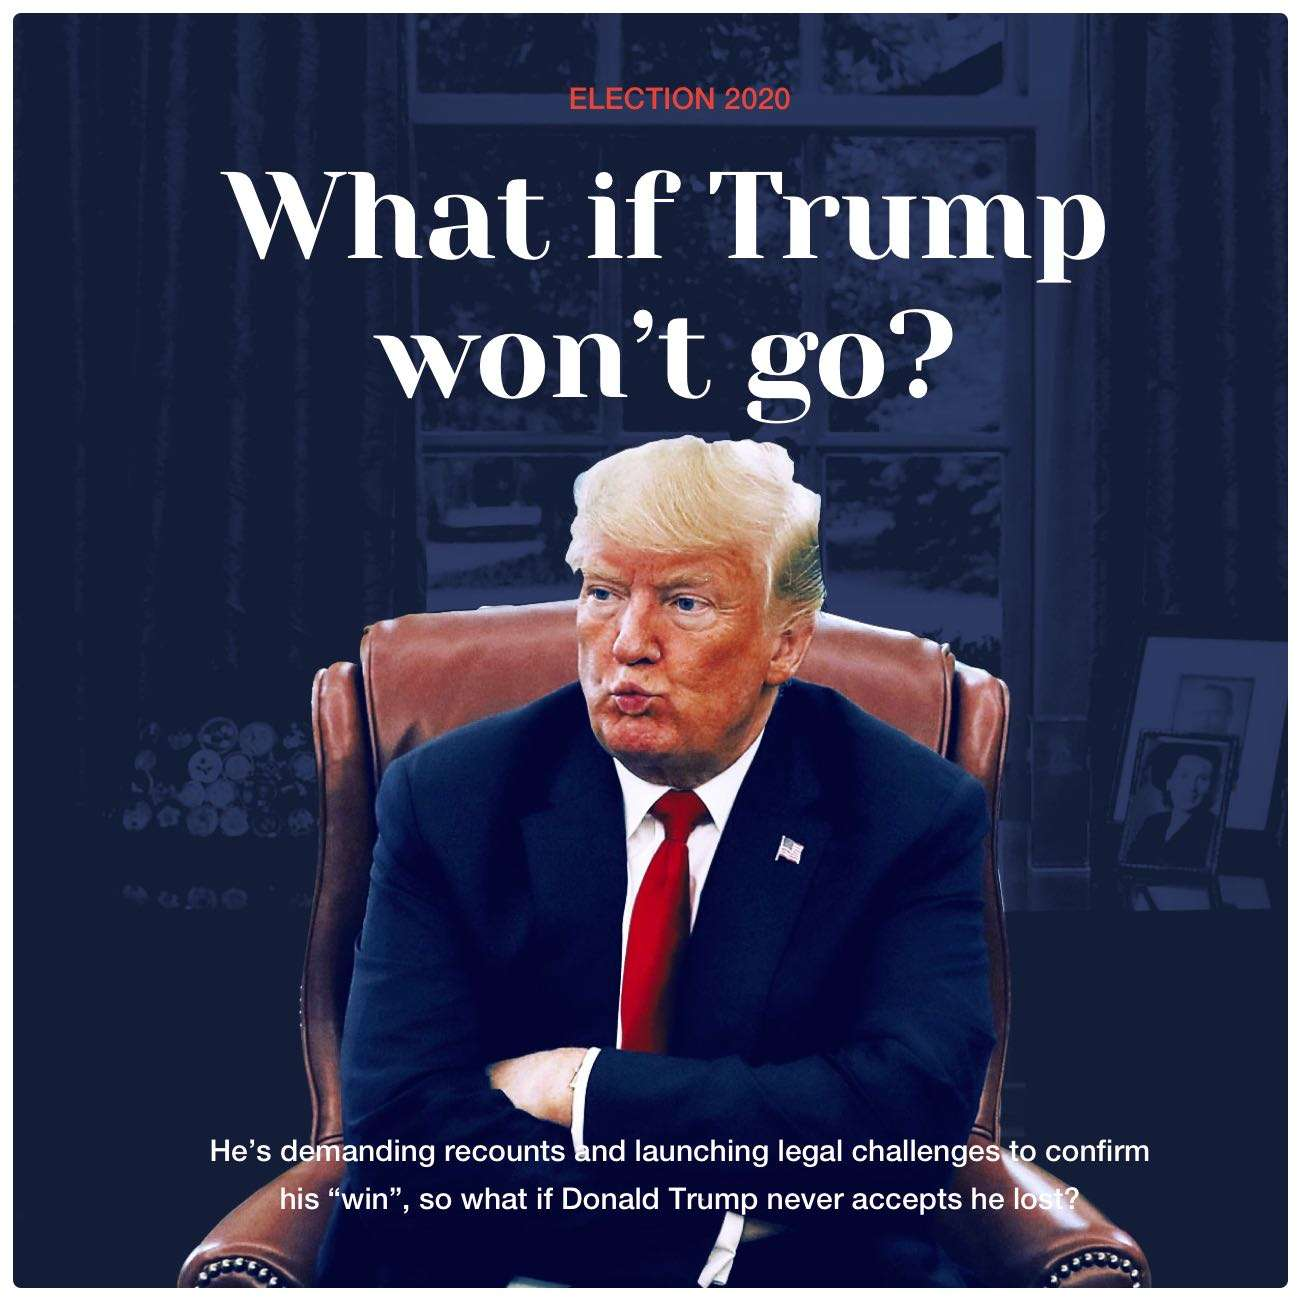 NED-2731 What if Trump won't go? - 0